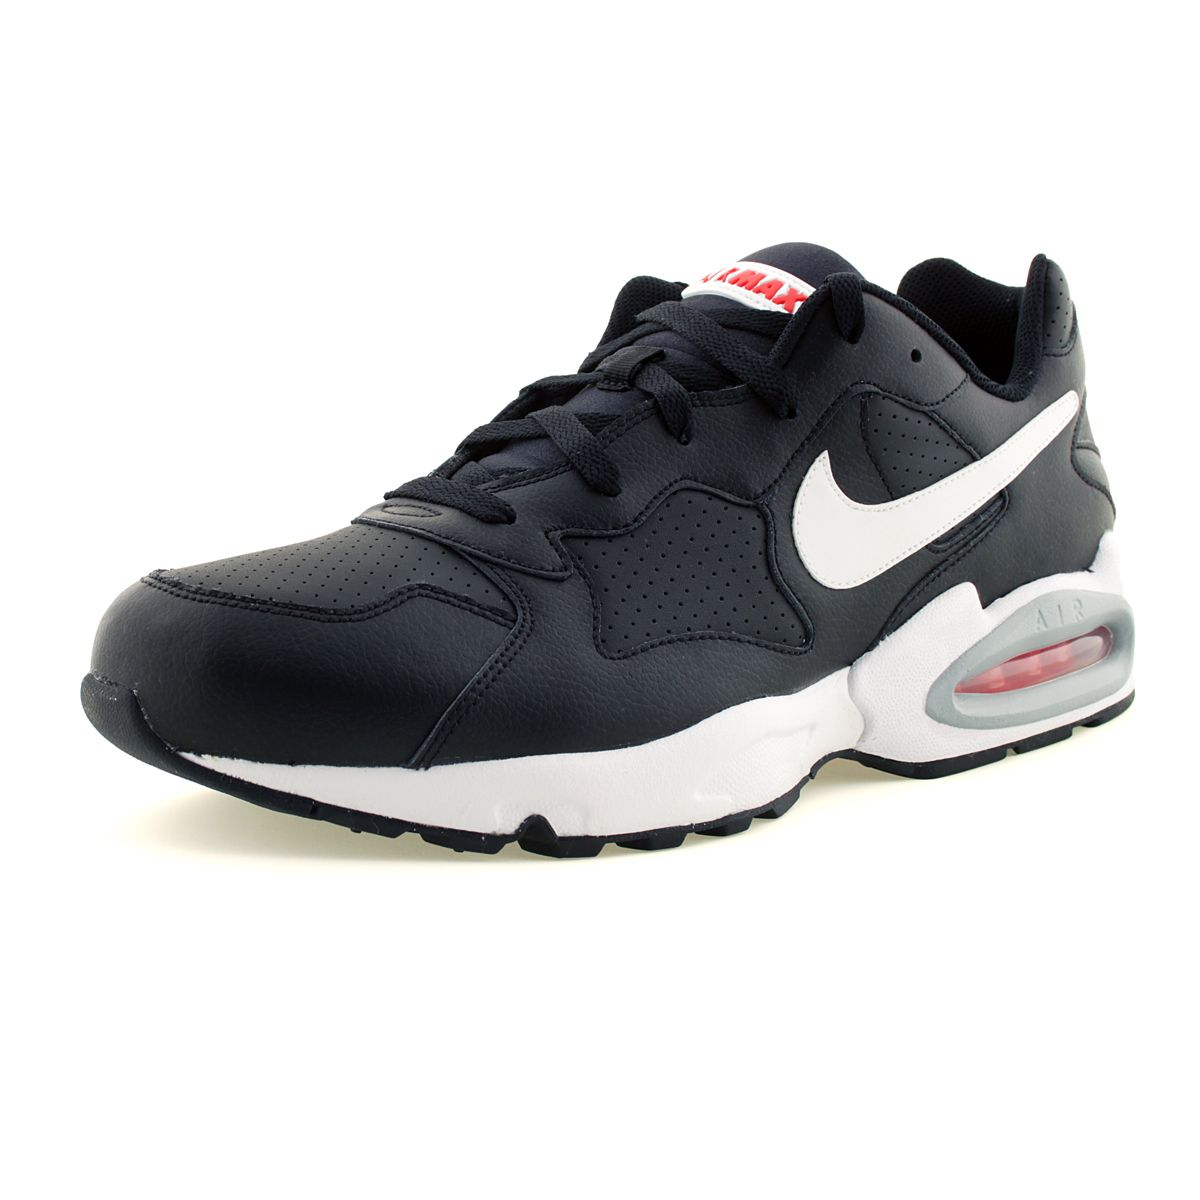 nike air max 47 5 air max 90 femme bleu. Black Bedroom Furniture Sets. Home Design Ideas